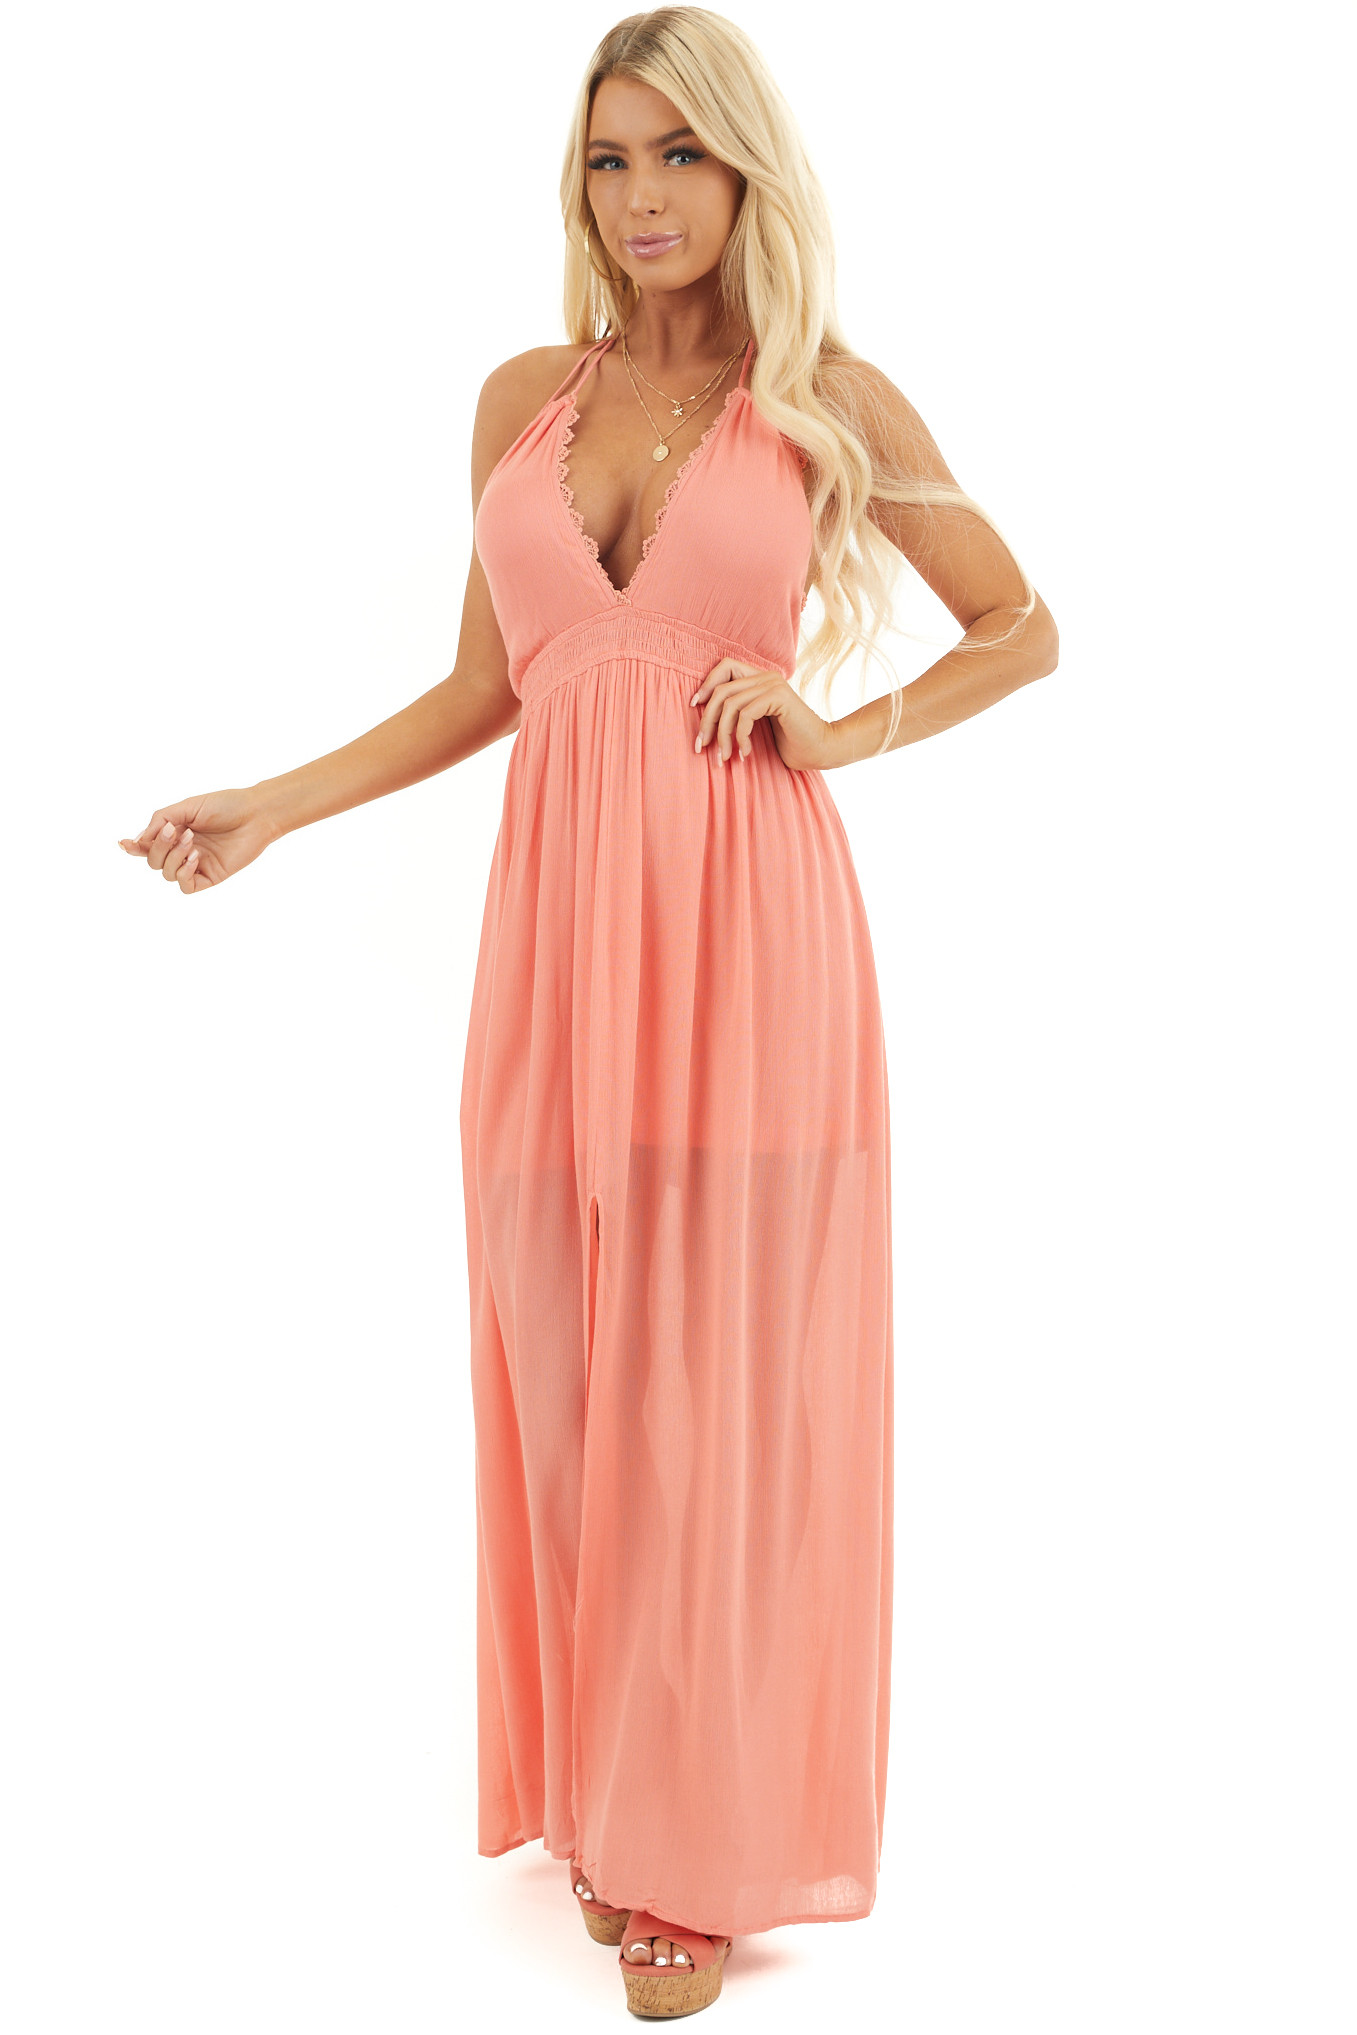 Coral Halter Maxi Dress with Lace Detail and Tassel Ties